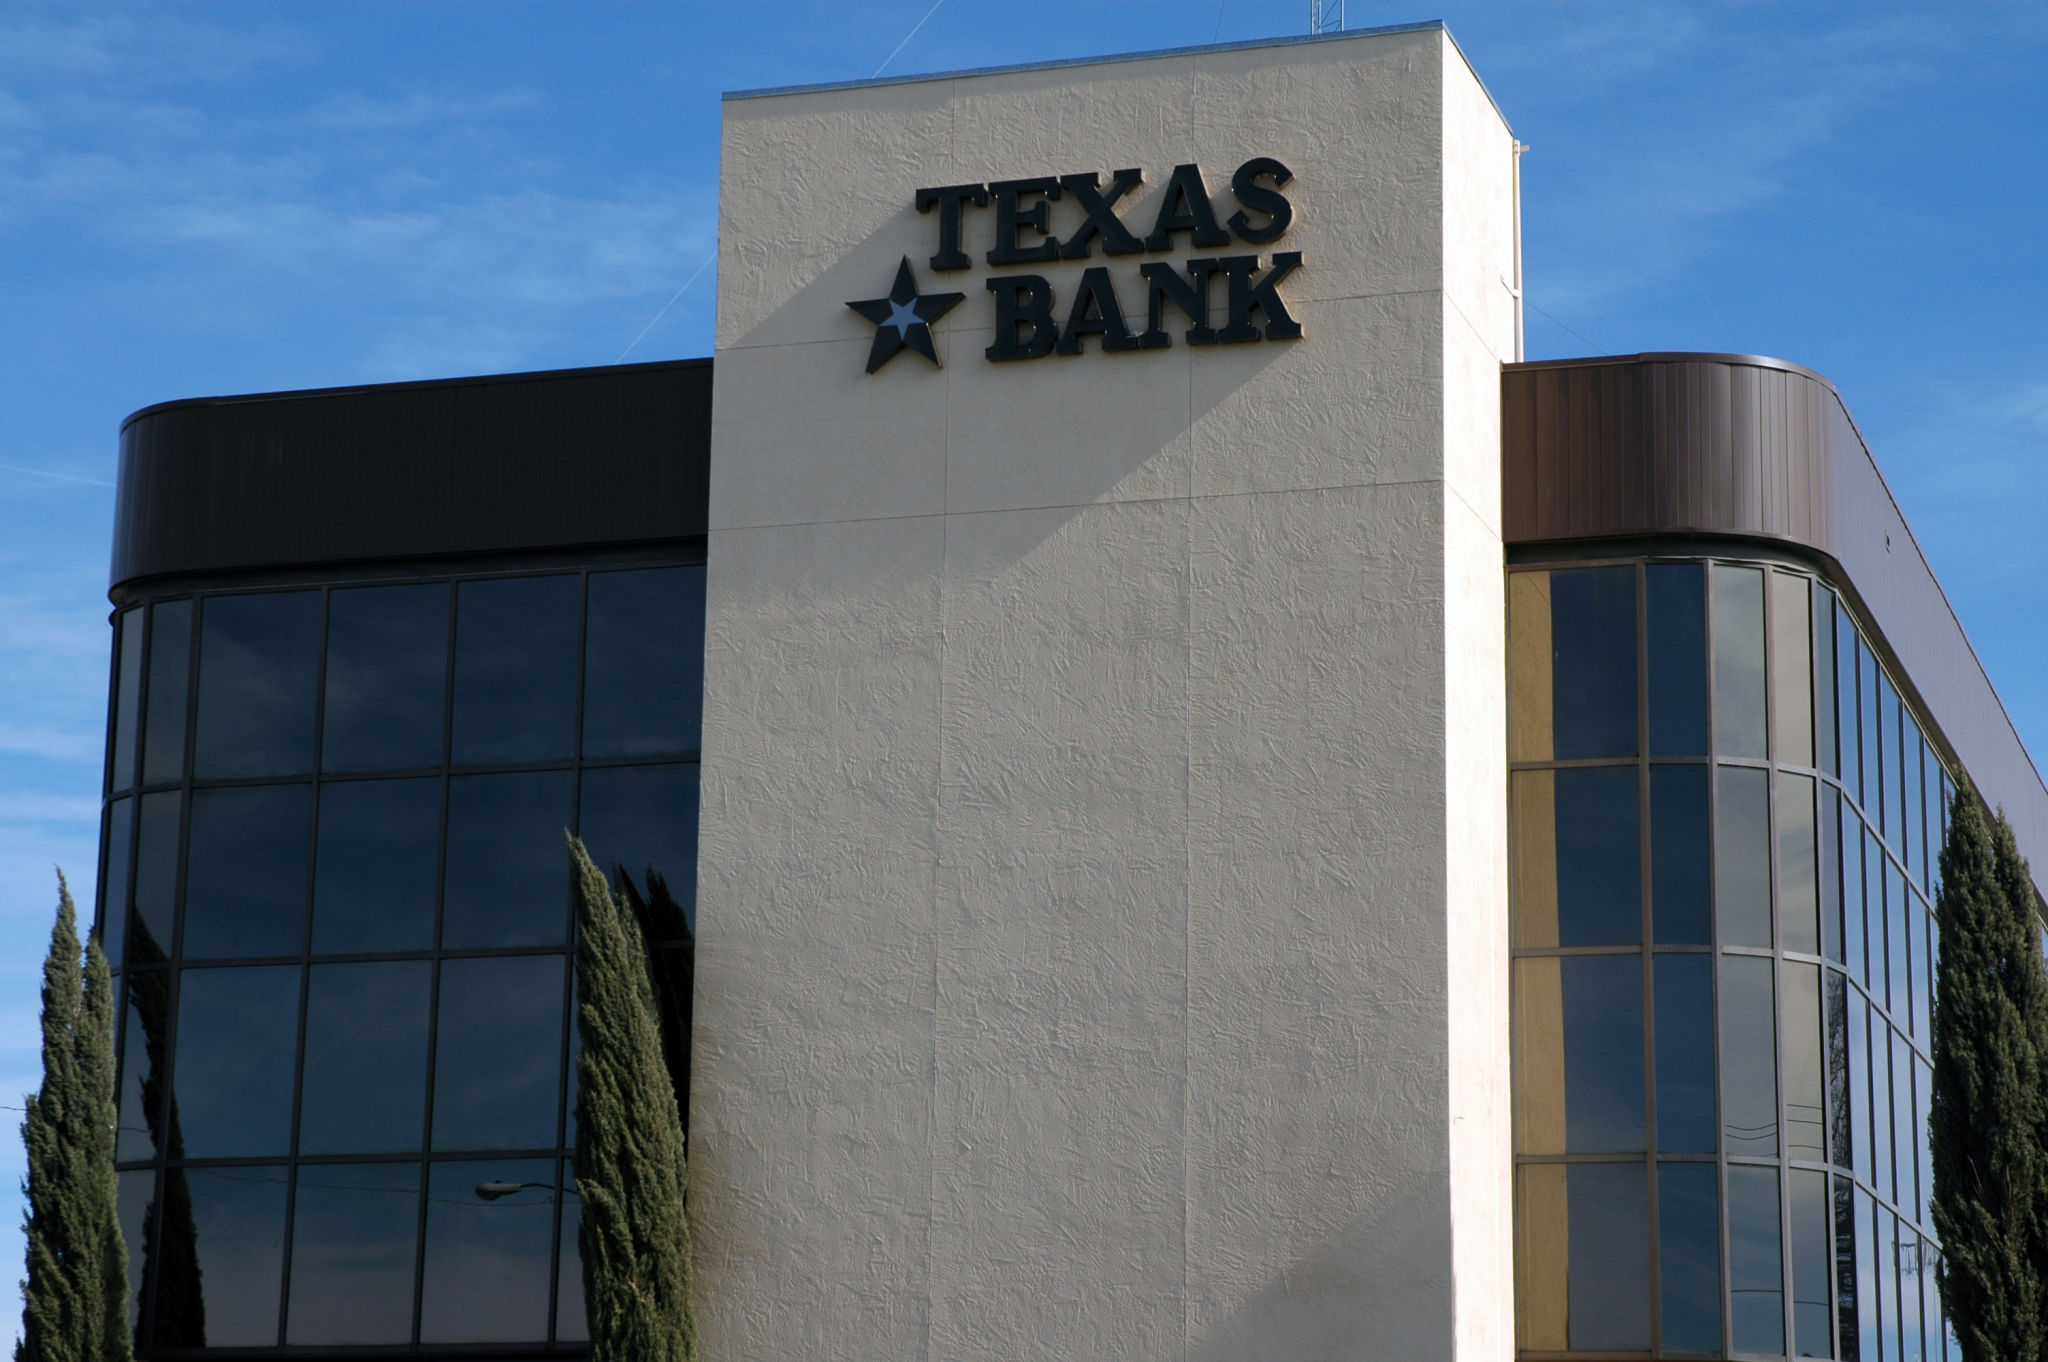 San Angelo's Texas State Bank found variable refrigerant flow (VRF) to be an HVAC strategy that was competitive and offered the least amount of downtime in the conversion from a chilled water loop system originally installed in 1977. Photos courtesy RectorSeal Corp.